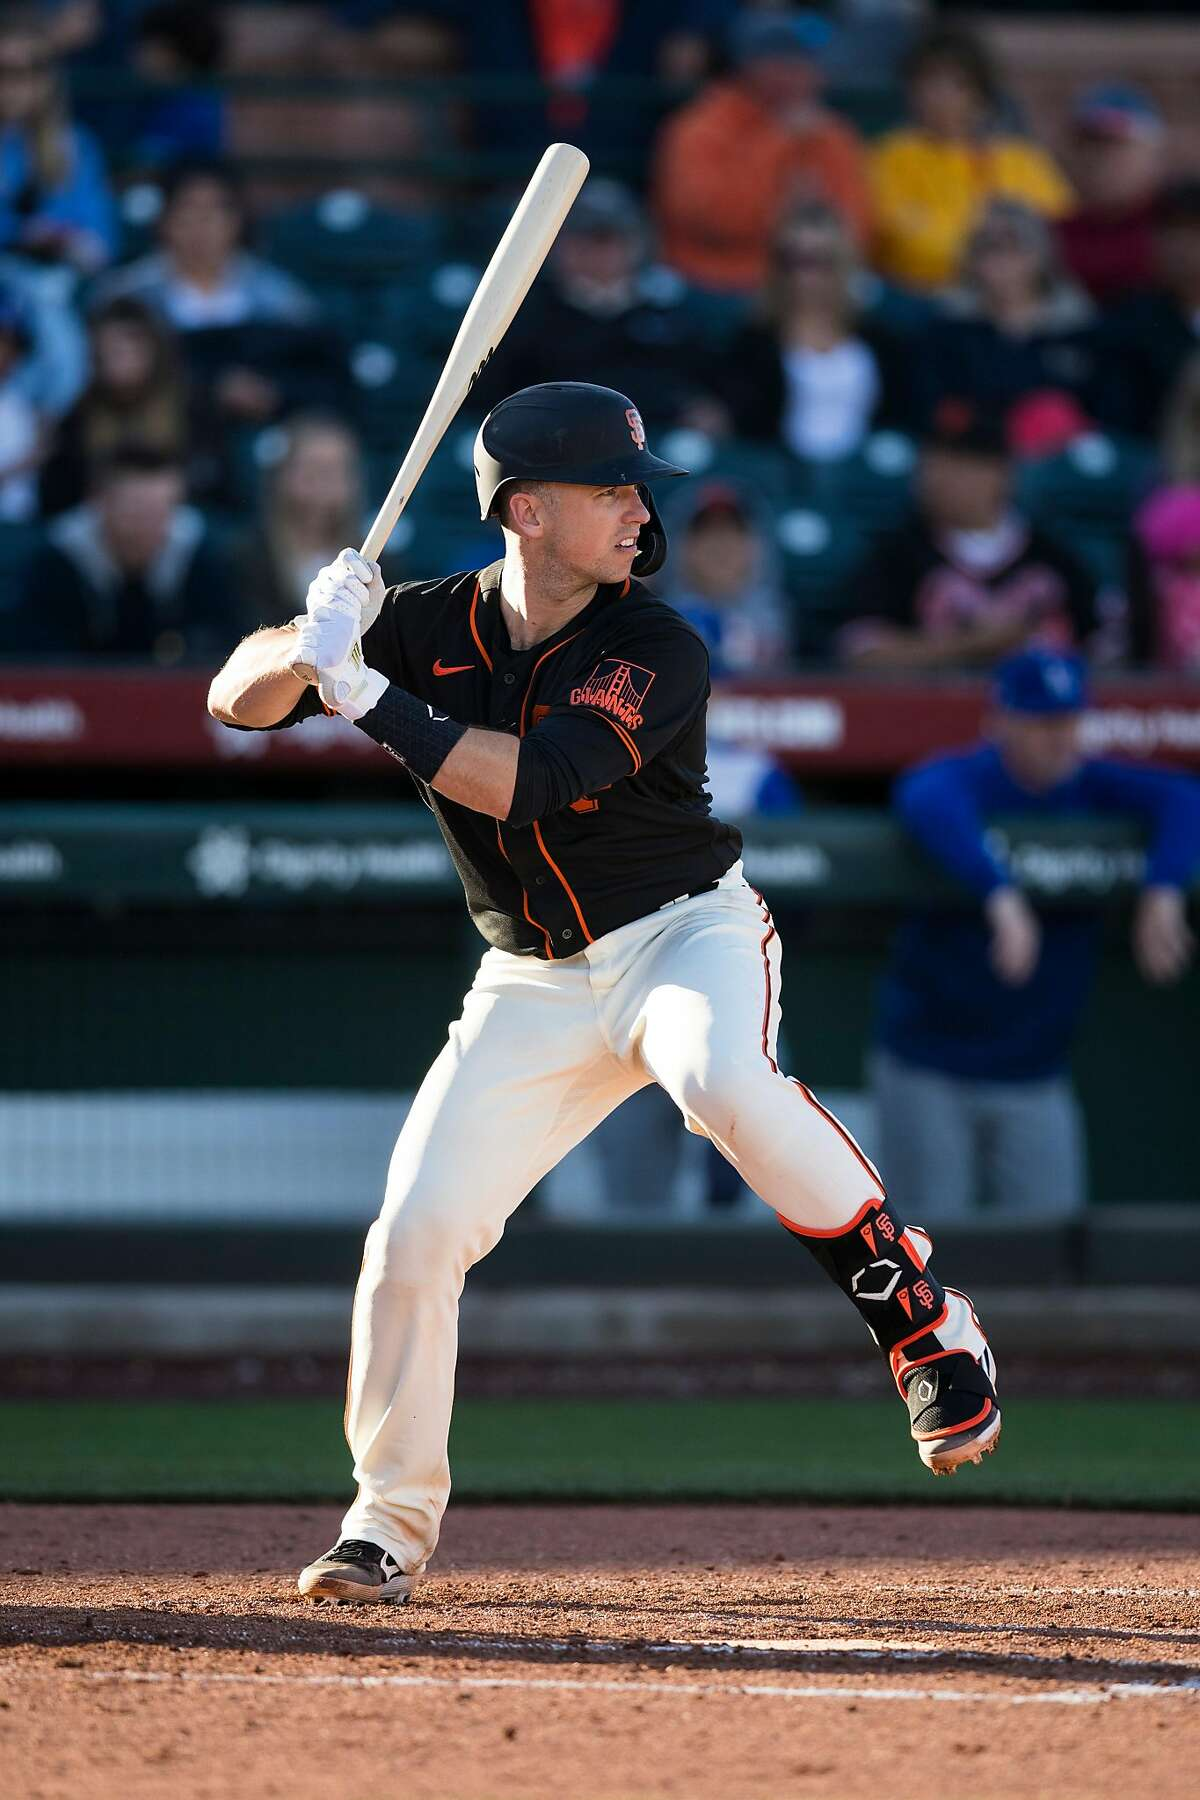 SCOTTSDALE, AZ - FEBRUARY 22: Buster Posey #28 of the San Francisco Giants bats during the game against the San Francisco Giants on Saturday, February 22, 2020 at Scottsdale Stadium in Scottsdale, Arizona. (Photo by Adam Glanzman/MLB Photos via Getty Images)